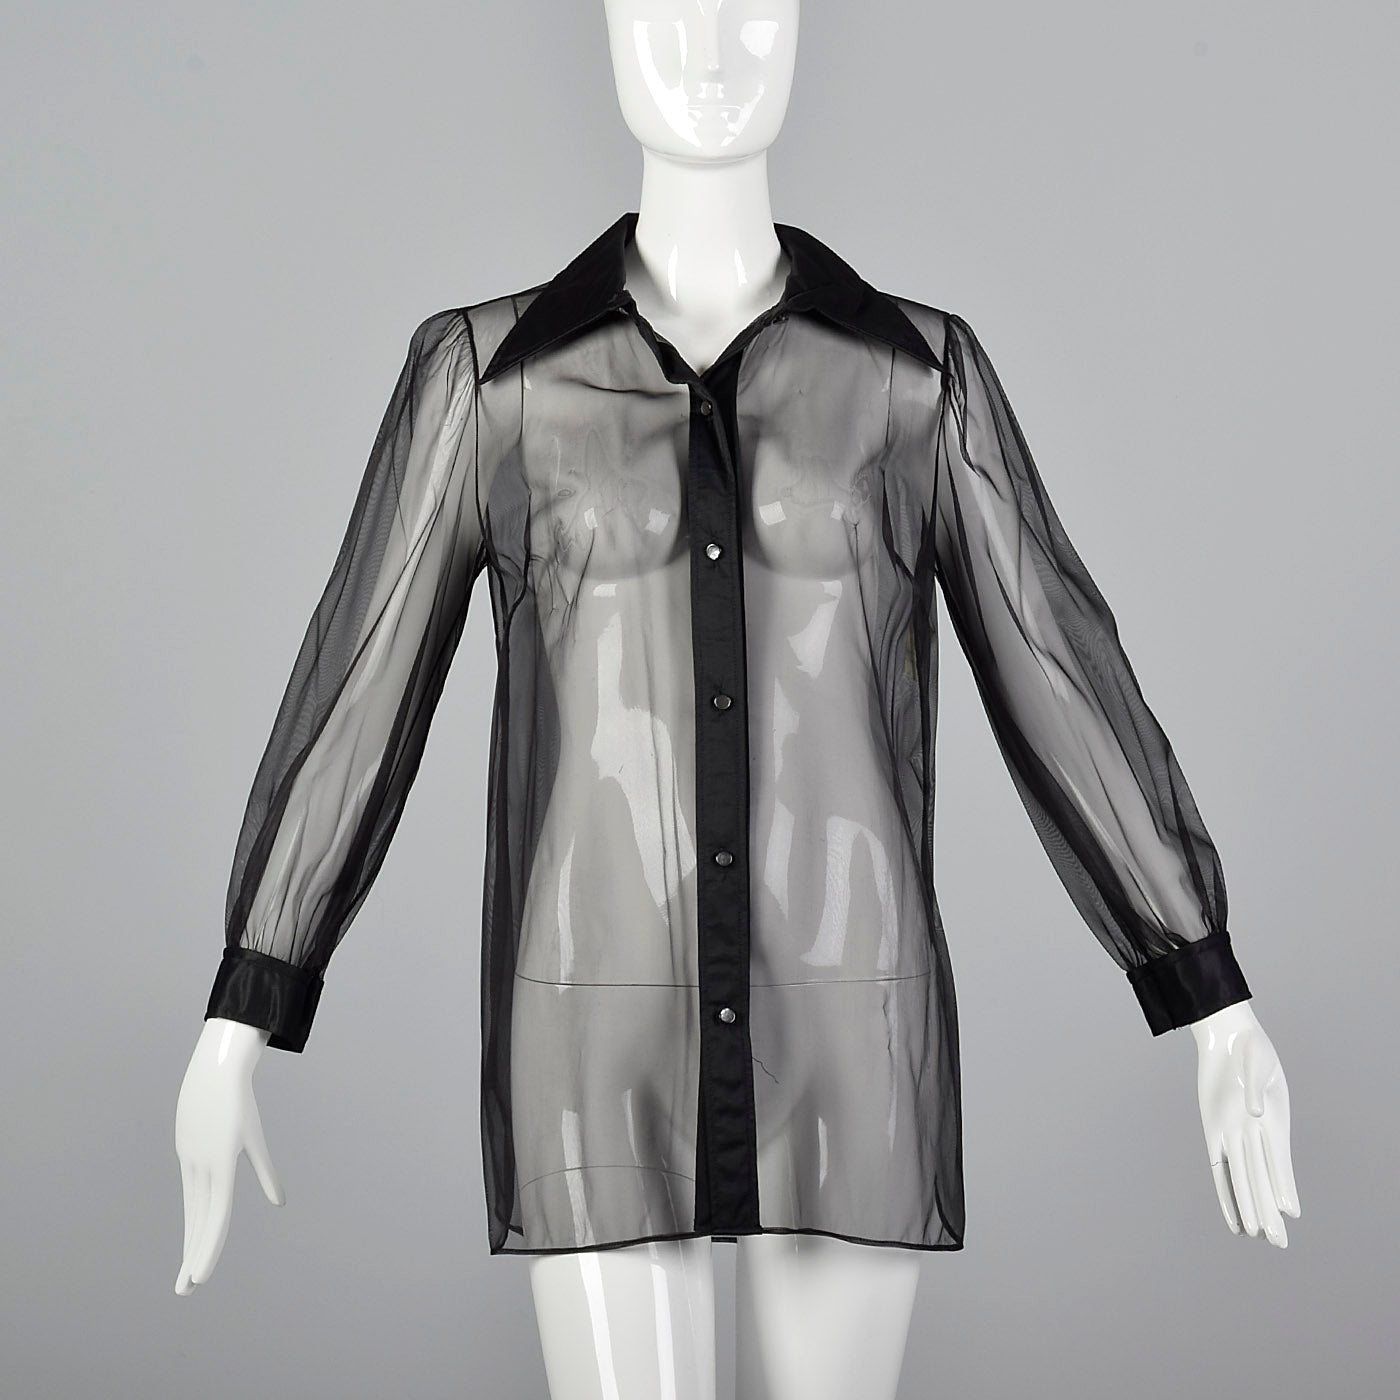 1970s Mary Quant Sheer Black Shirt